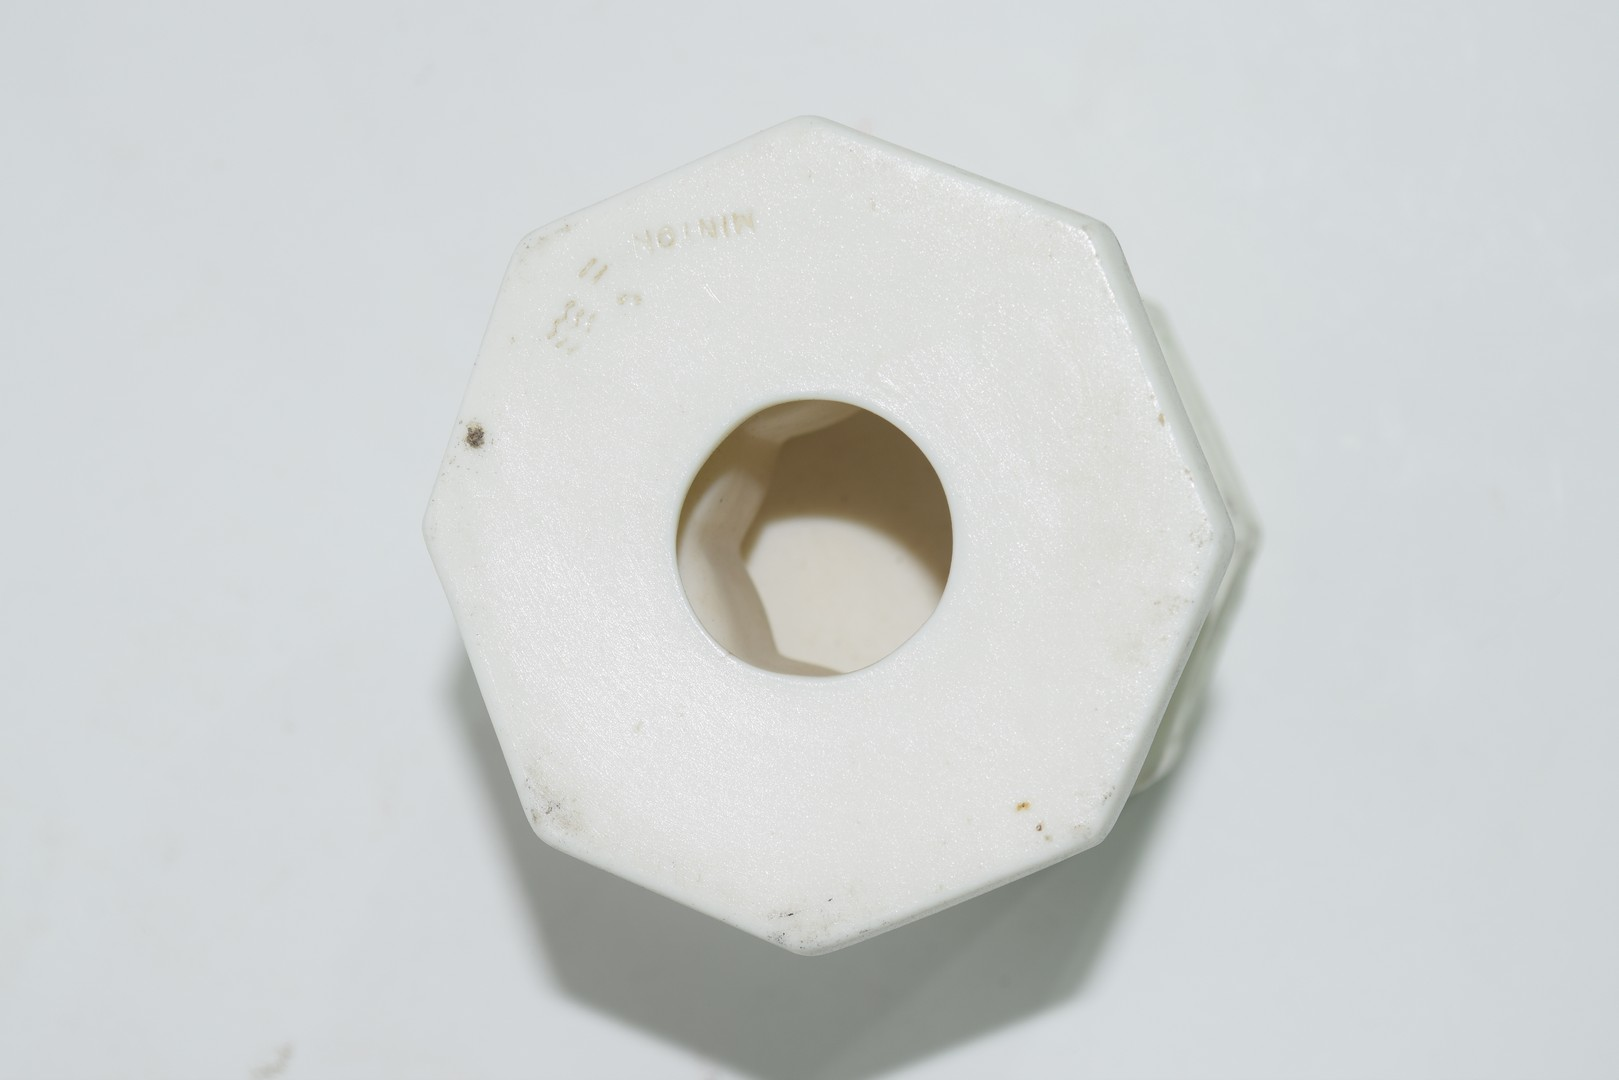 19th century Minton Parian ware model of a font - Image 6 of 7